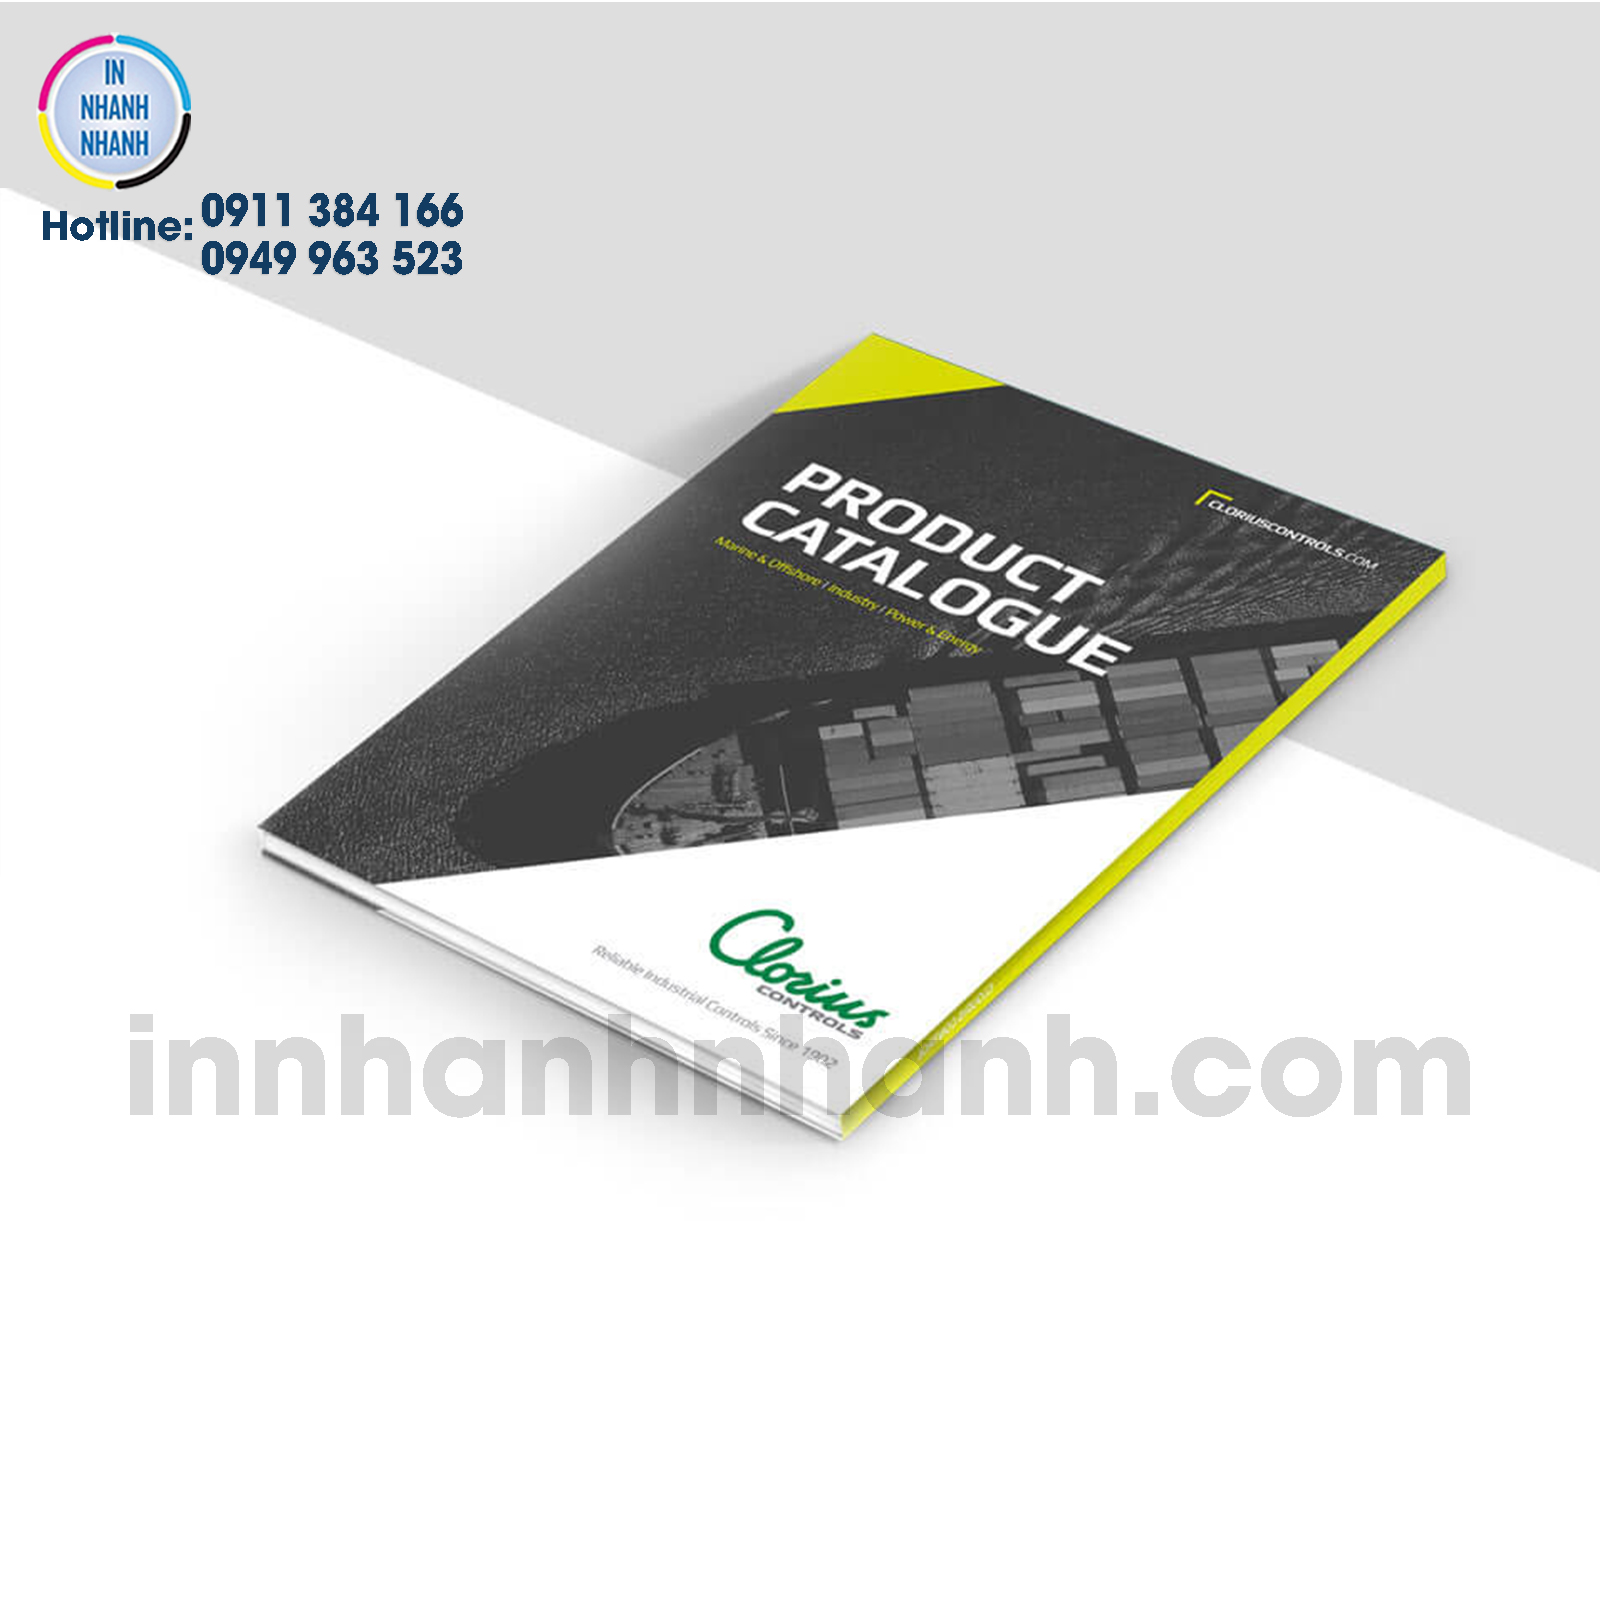 In catalogue giá rẻ Tp Hcm